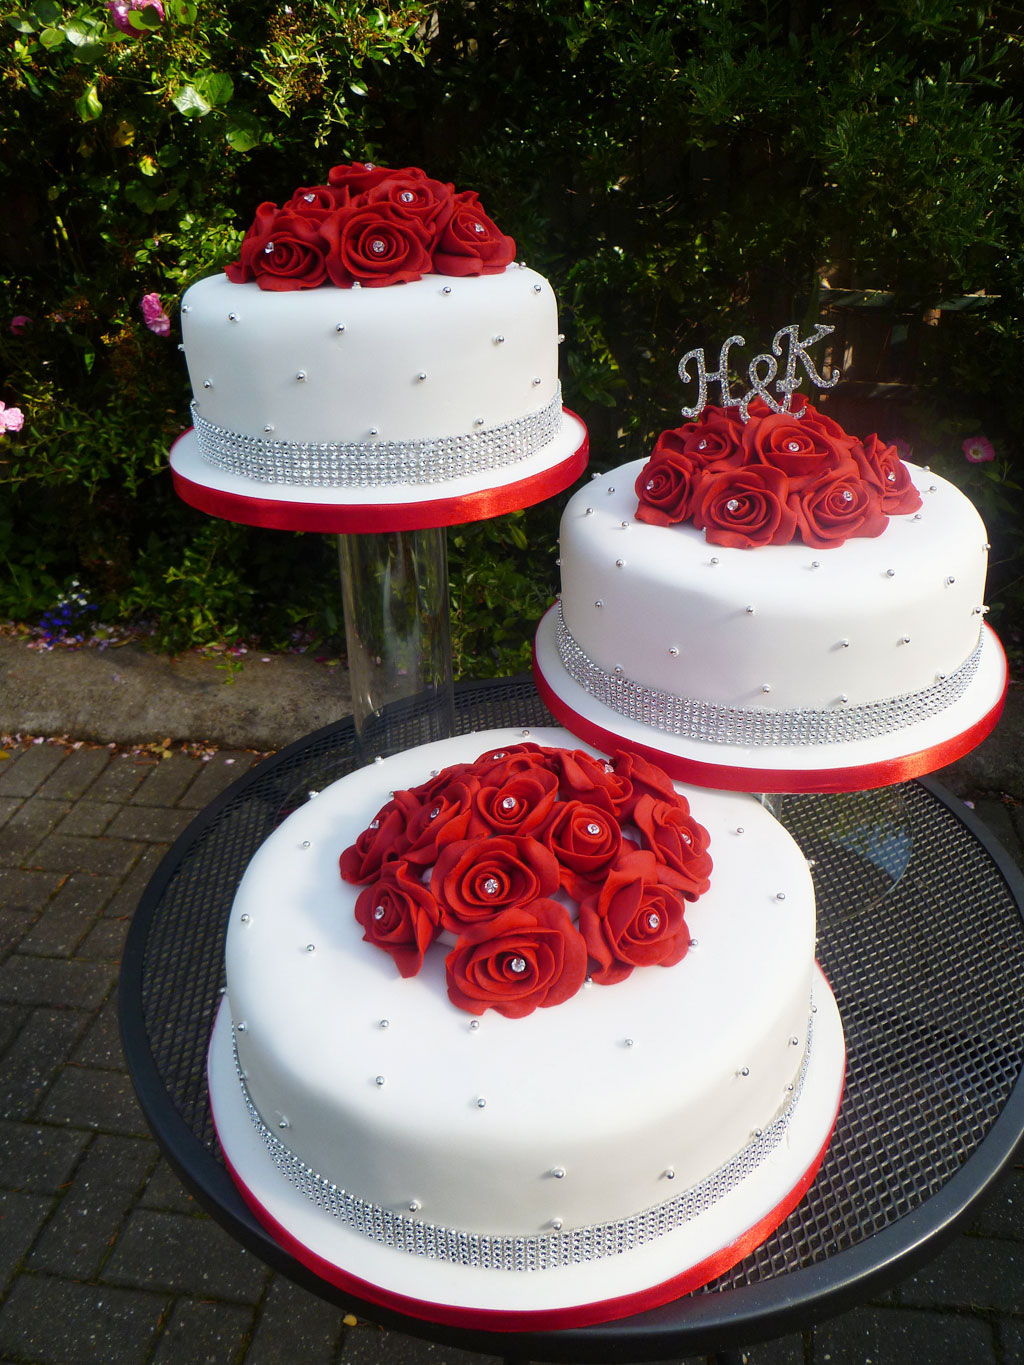 Red and white wedding cake ideas wedding cake cake ideas by red and white wedding cake ideas picture in wedding cake junglespirit Image collections